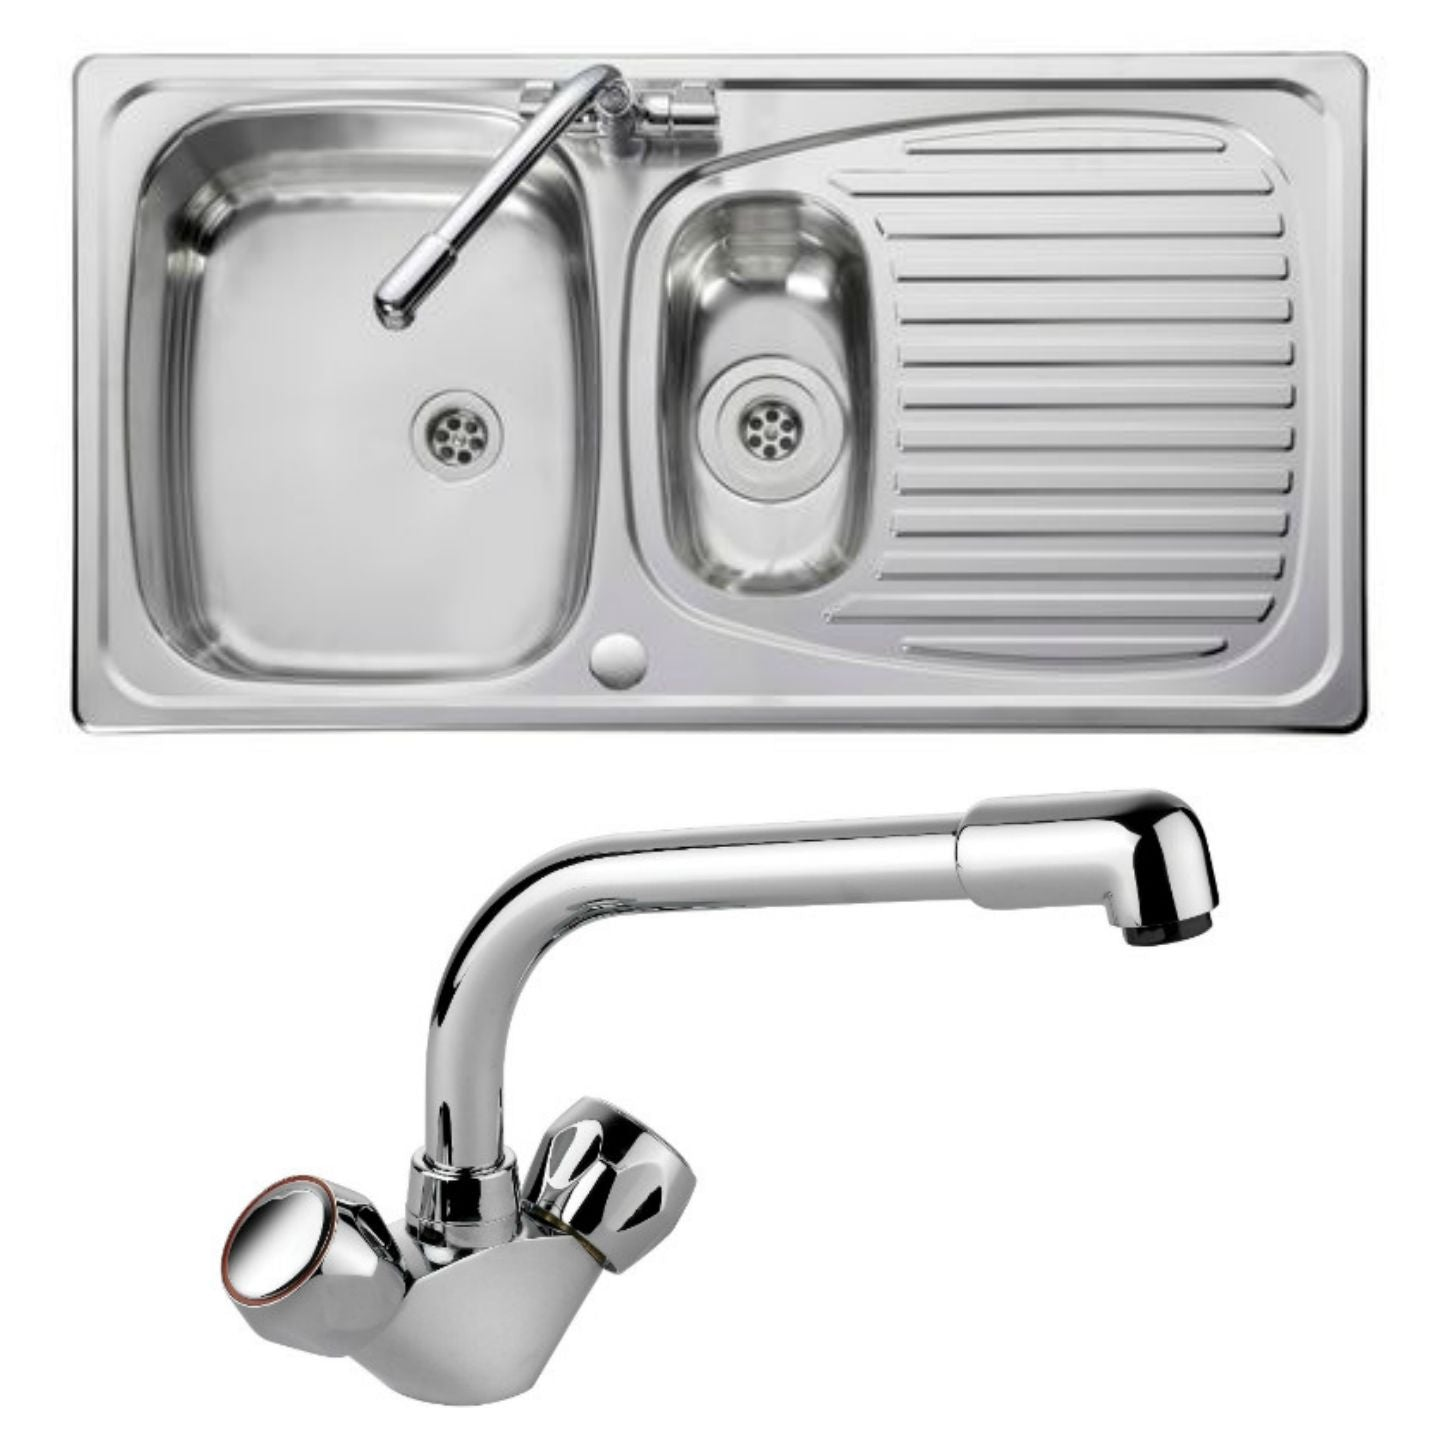 Leisure Sinks Euroline EL9502/TC sink and tap 1.5 bowl Stainless Steel